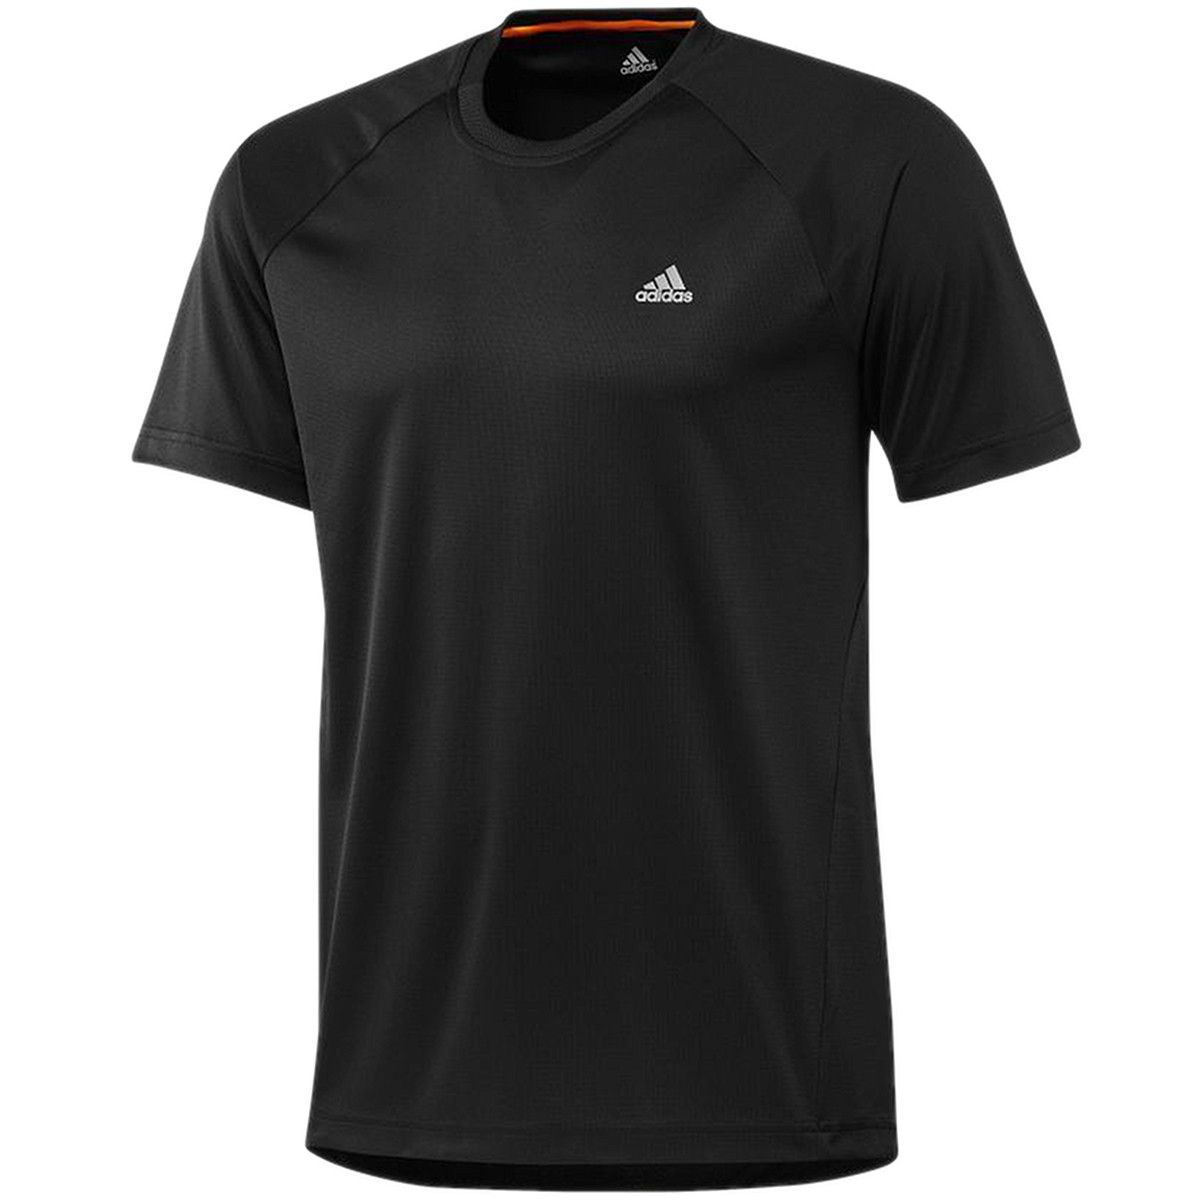 adidas essential herren funktionsshirt schwarz tee shirt. Black Bedroom Furniture Sets. Home Design Ideas